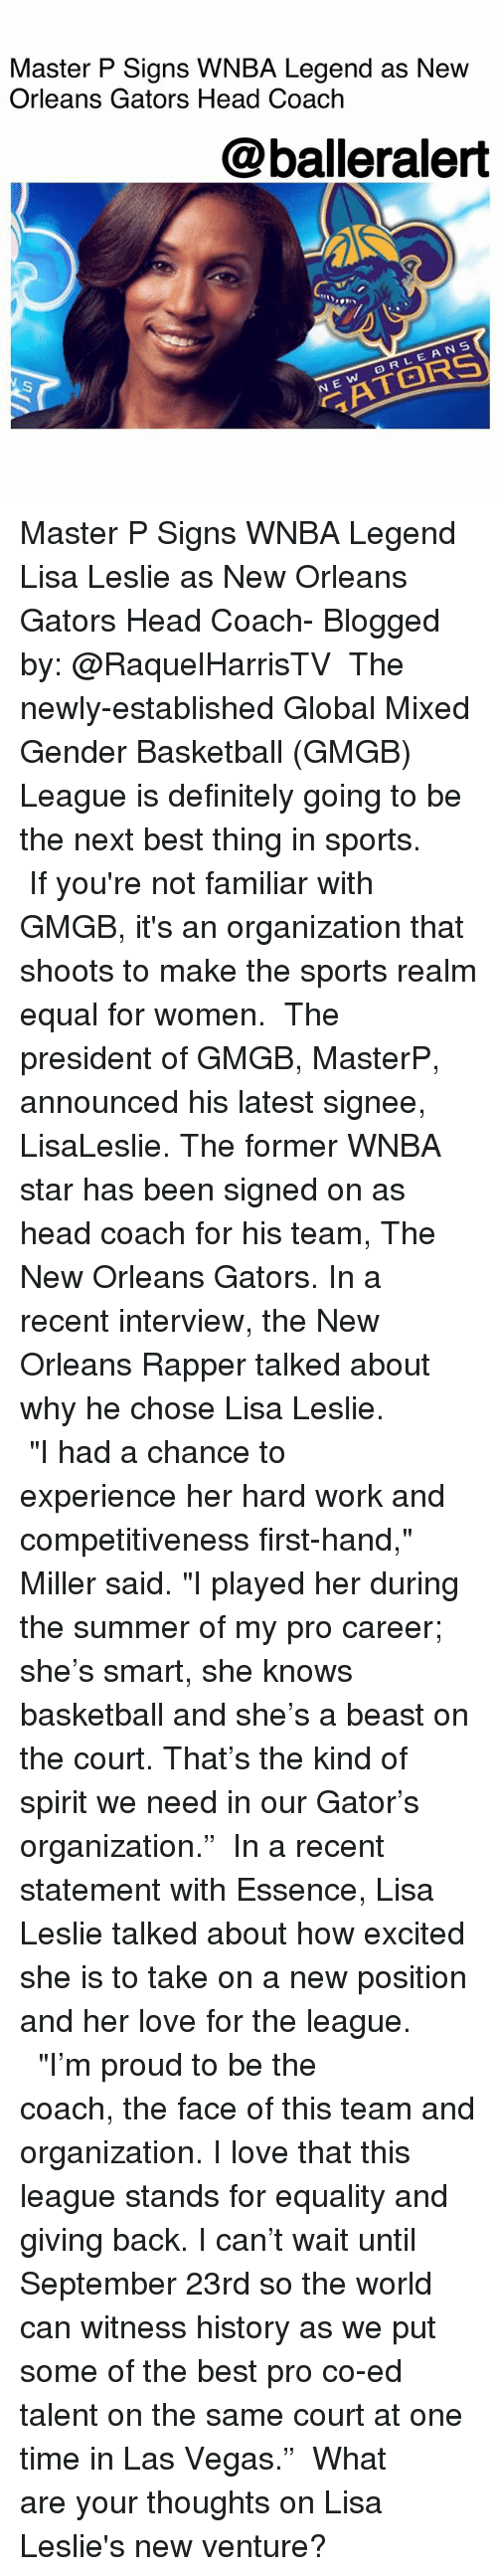 "Equalism: Master P Signs WNBA Legend as Nevw  Orleans Gators Head Coach  @balleralert  On  RLEANS  N E Master P Signs WNBA Legend Lisa Leslie as New Orleans Gators Head Coach- Blogged by: @RaquelHarrisTV ⠀⠀⠀⠀⠀⠀⠀ The newly-established Global Mixed Gender Basketball (GMGB) League is definitely going to be the next best thing in sports. ⠀⠀⠀⠀⠀⠀⠀ If you're not familiar with GMGB, it's an organization that shoots to make the sports realm equal for women. ⠀⠀⠀⠀⠀⠀⠀ The president of GMGB, MasterP, announced his latest signee, LisaLeslie. The former WNBA star has been signed on as head coach for his team, The New Orleans Gators. In a recent interview, the New Orleans Rapper talked about why he chose Lisa Leslie. ⠀⠀⠀⠀⠀⠀⠀ ⠀⠀⠀⠀⠀⠀⠀ ""I had a chance to experience her hard work and competitiveness first-hand,"" Miller said. ""I played her during the summer of my pro career; she's smart, she knows basketball and she's a beast on the court. That's the kind of spirit we need in our Gator's organization."" ⠀⠀⠀⠀⠀⠀⠀ In a recent statement with Essence, Lisa Leslie talked about how excited she is to take on a new position and her love for the league. ⠀⠀⠀⠀⠀⠀⠀ ⠀⠀⠀⠀⠀⠀⠀ ""I'm proud to be the coach, the face of this team and organization. I love that this league stands for equality and giving back. I can't wait until September 23rd so the world can witness history as we put some of the best pro co-ed talent on the same court at one time in Las Vegas."" ⠀⠀⠀⠀⠀⠀⠀ What are your thoughts on Lisa Leslie's new venture?"